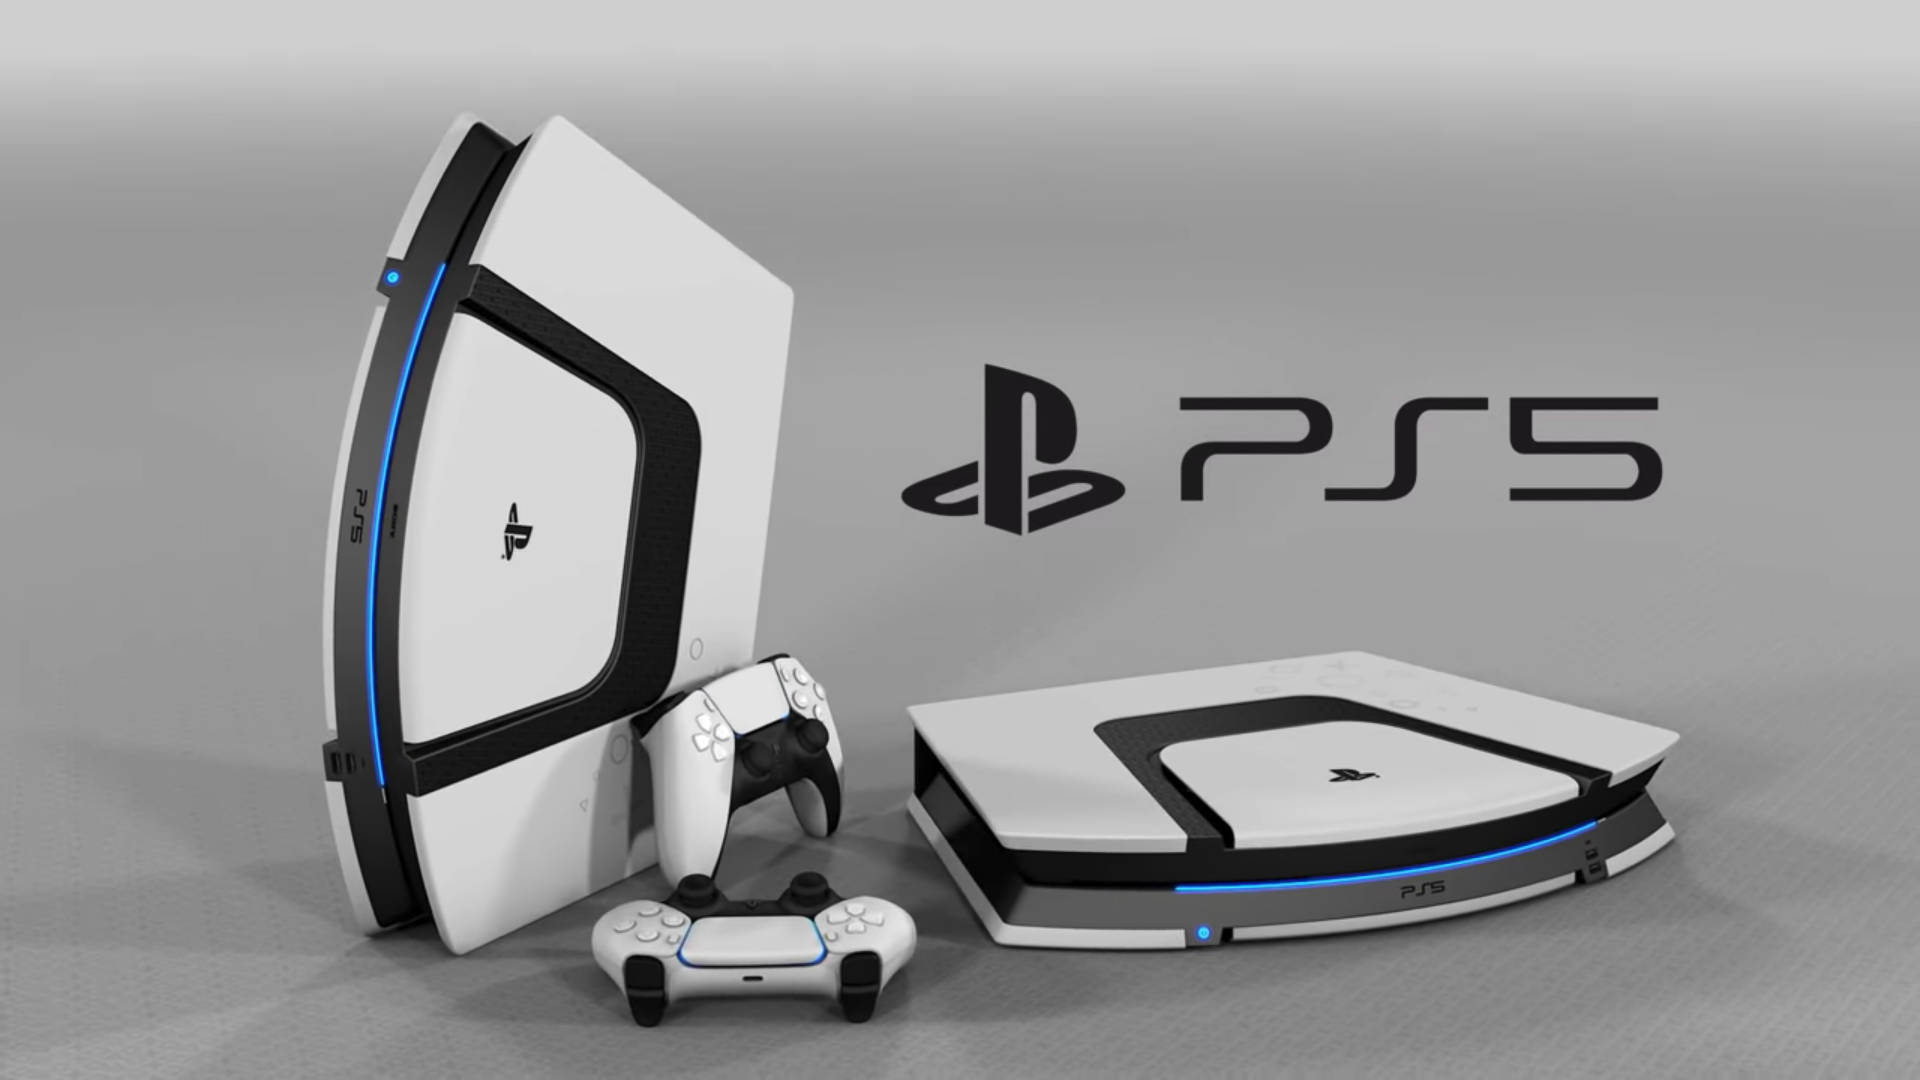 Should I Pre-Order the PS5 or Wait for Actual Release?